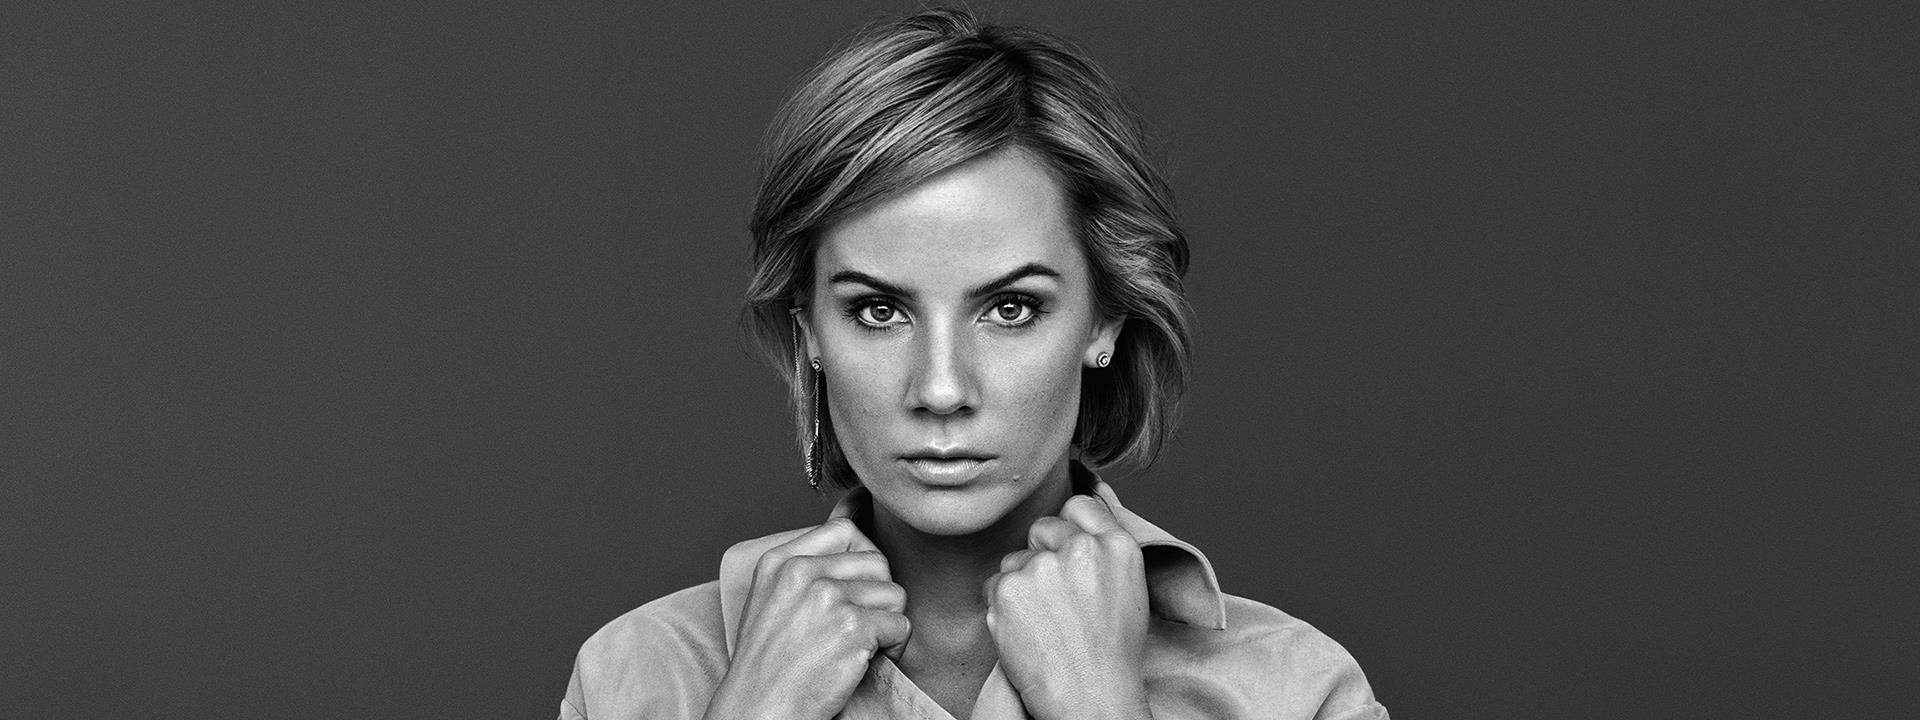 Norway's Ina Wroldsen shares her songwriting secrets in a Beats 1 Radio Show!